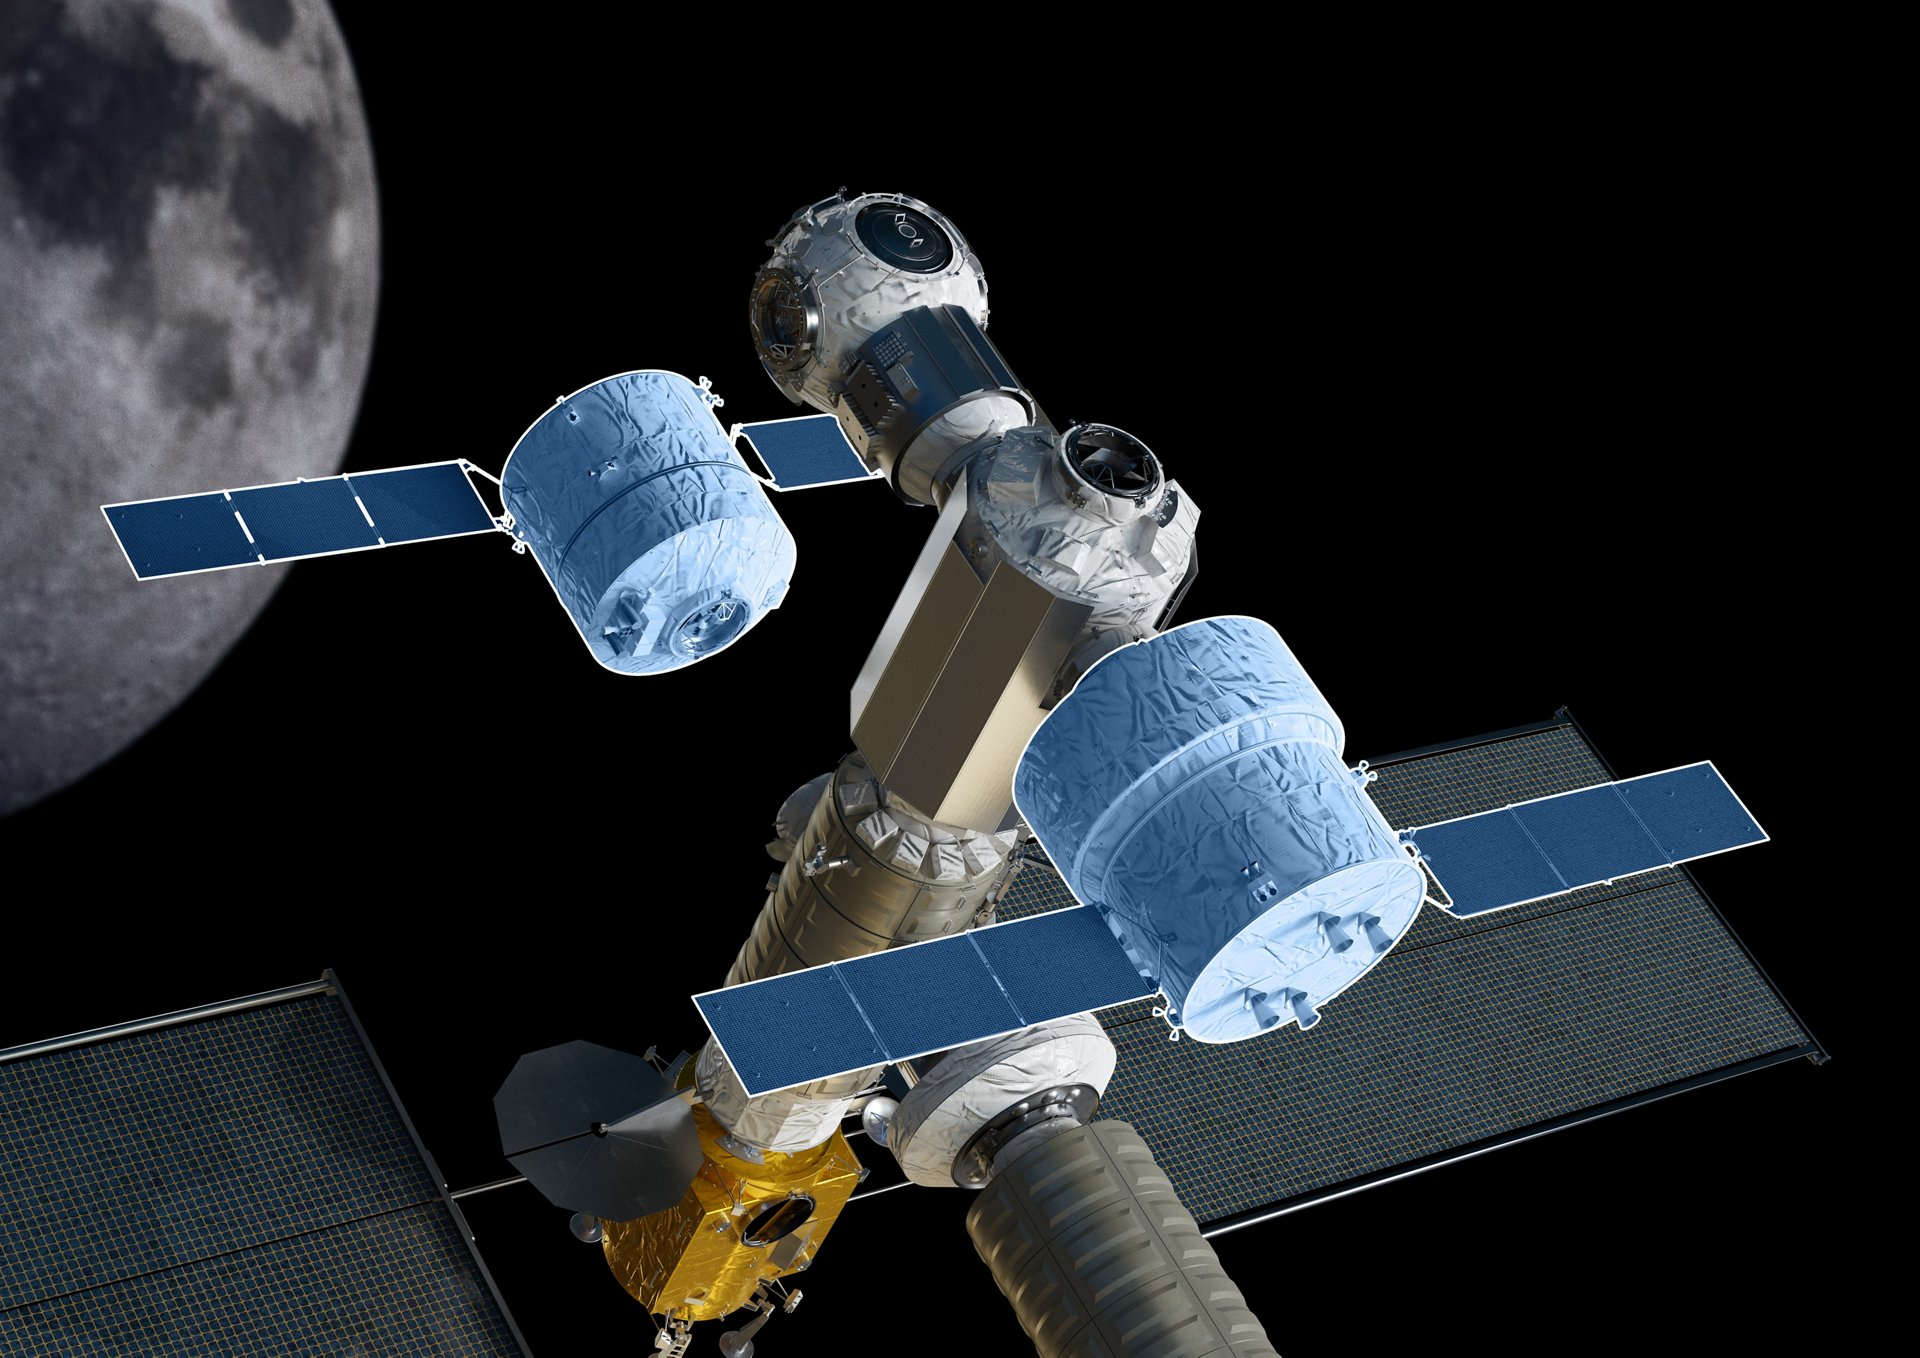 The execution of lunar missions, including landing on the Moon and setting up upcoming lunar space station, Gateway, is a complex and challenging task for the international community. It requires a precisely planned chain of supply and logistics missions. The Airbus Moon Cruiser concept supports these challenges